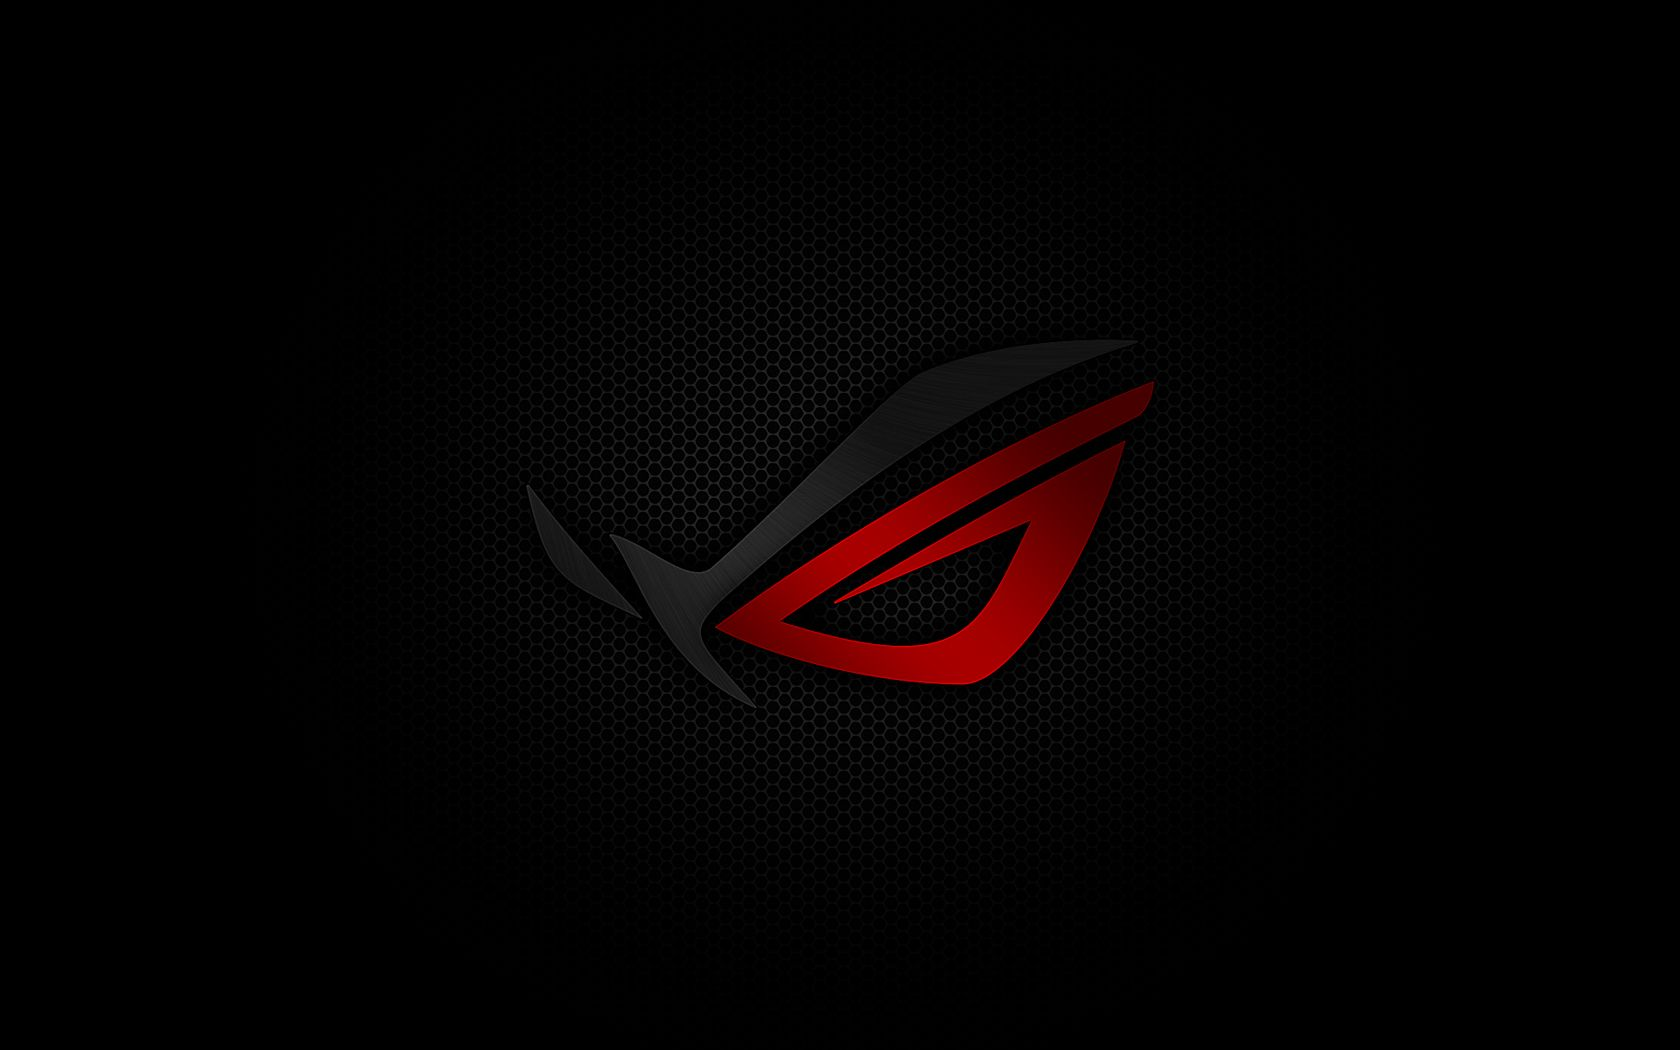 Asus Rog Wallpaper Pack By Blackout1911 On Deviantart In 2020 4k Wallpapers For Pc Laptop Wallpaper Desktop Wallpapers Wallpaper Pc